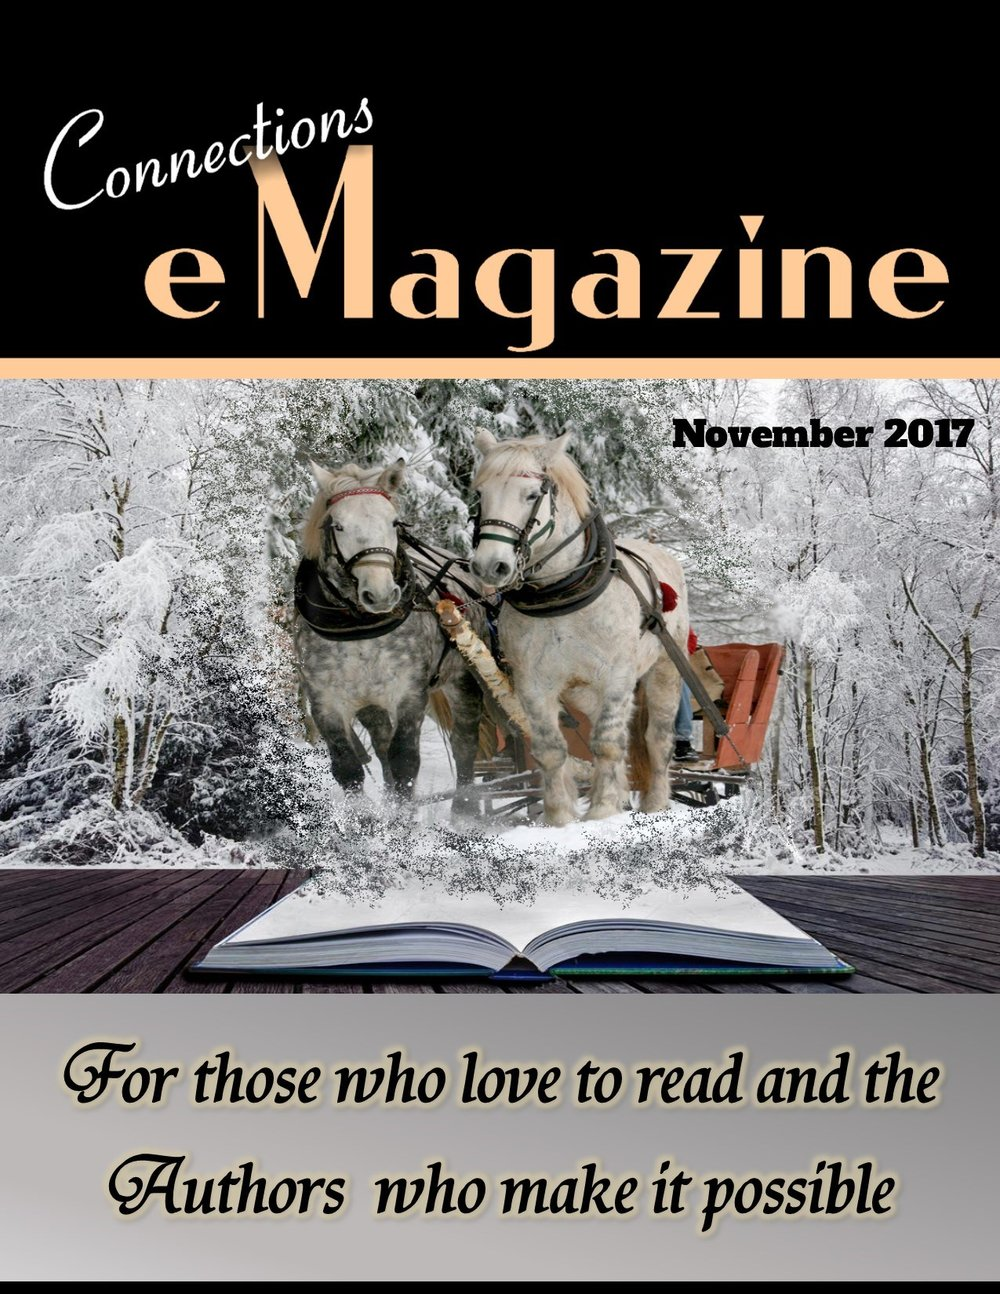 mpsmith-publishing-connections-emagazine-november-2017_Page_001.jpg